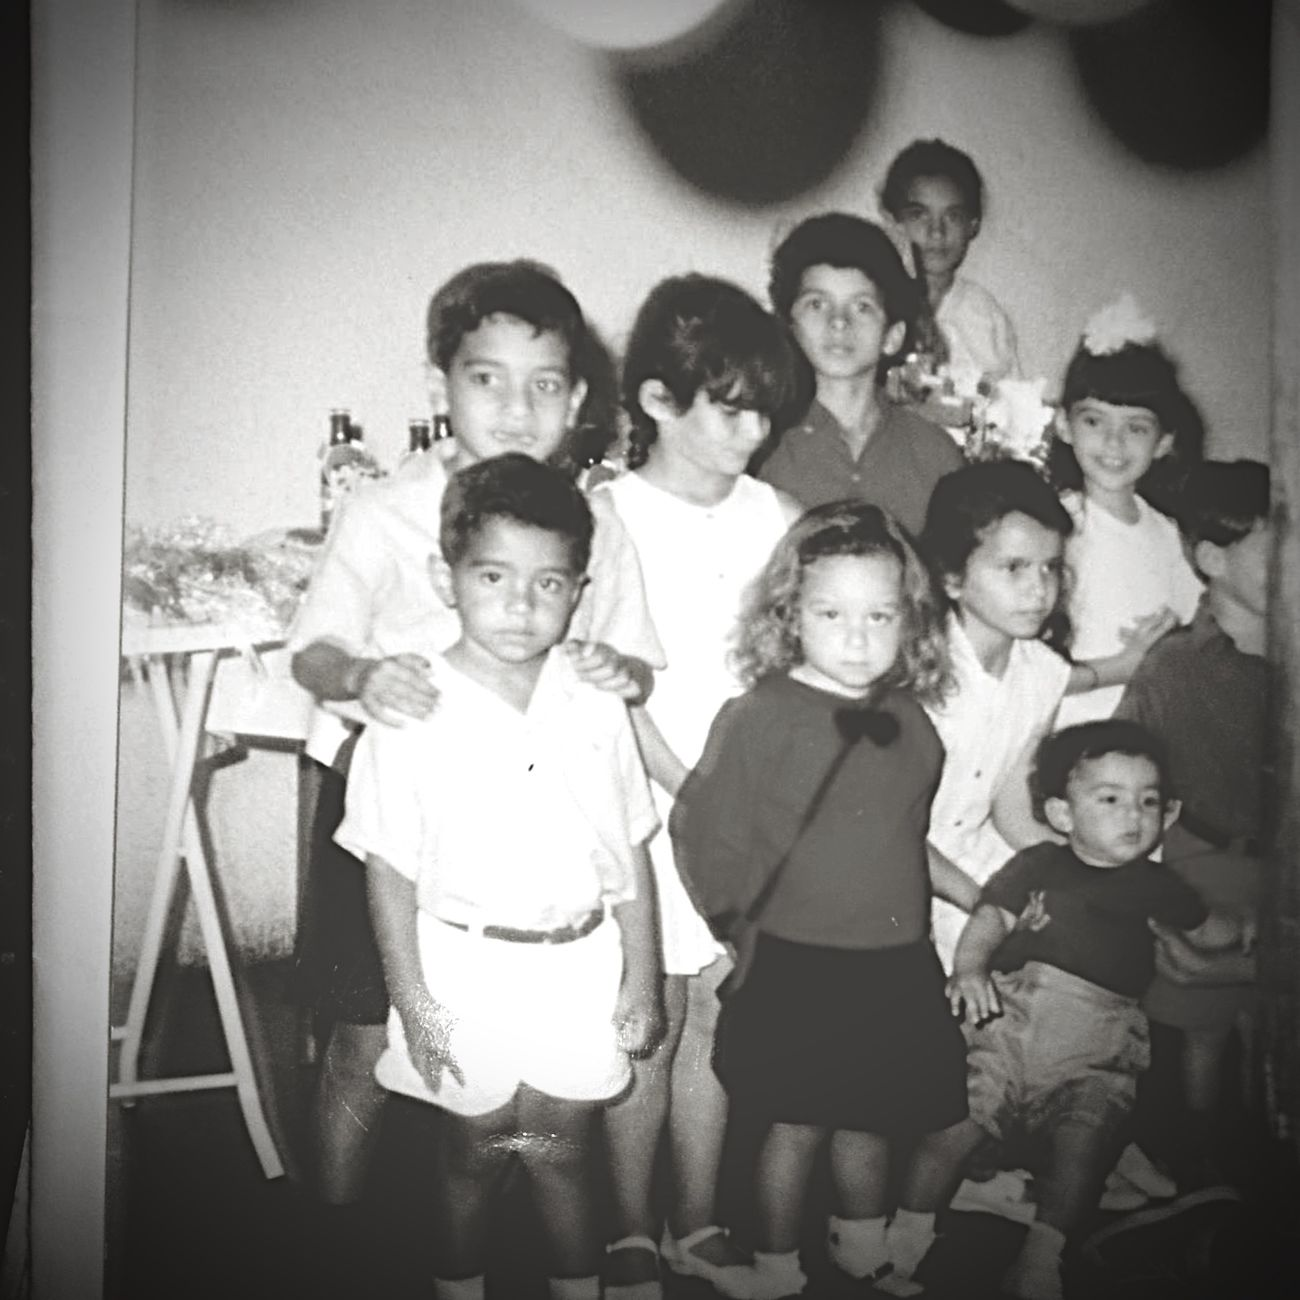 Vazante Oldpicture Blackandwhite Birthday Party Childhood Memories Children 1989photobooth Oldfriends